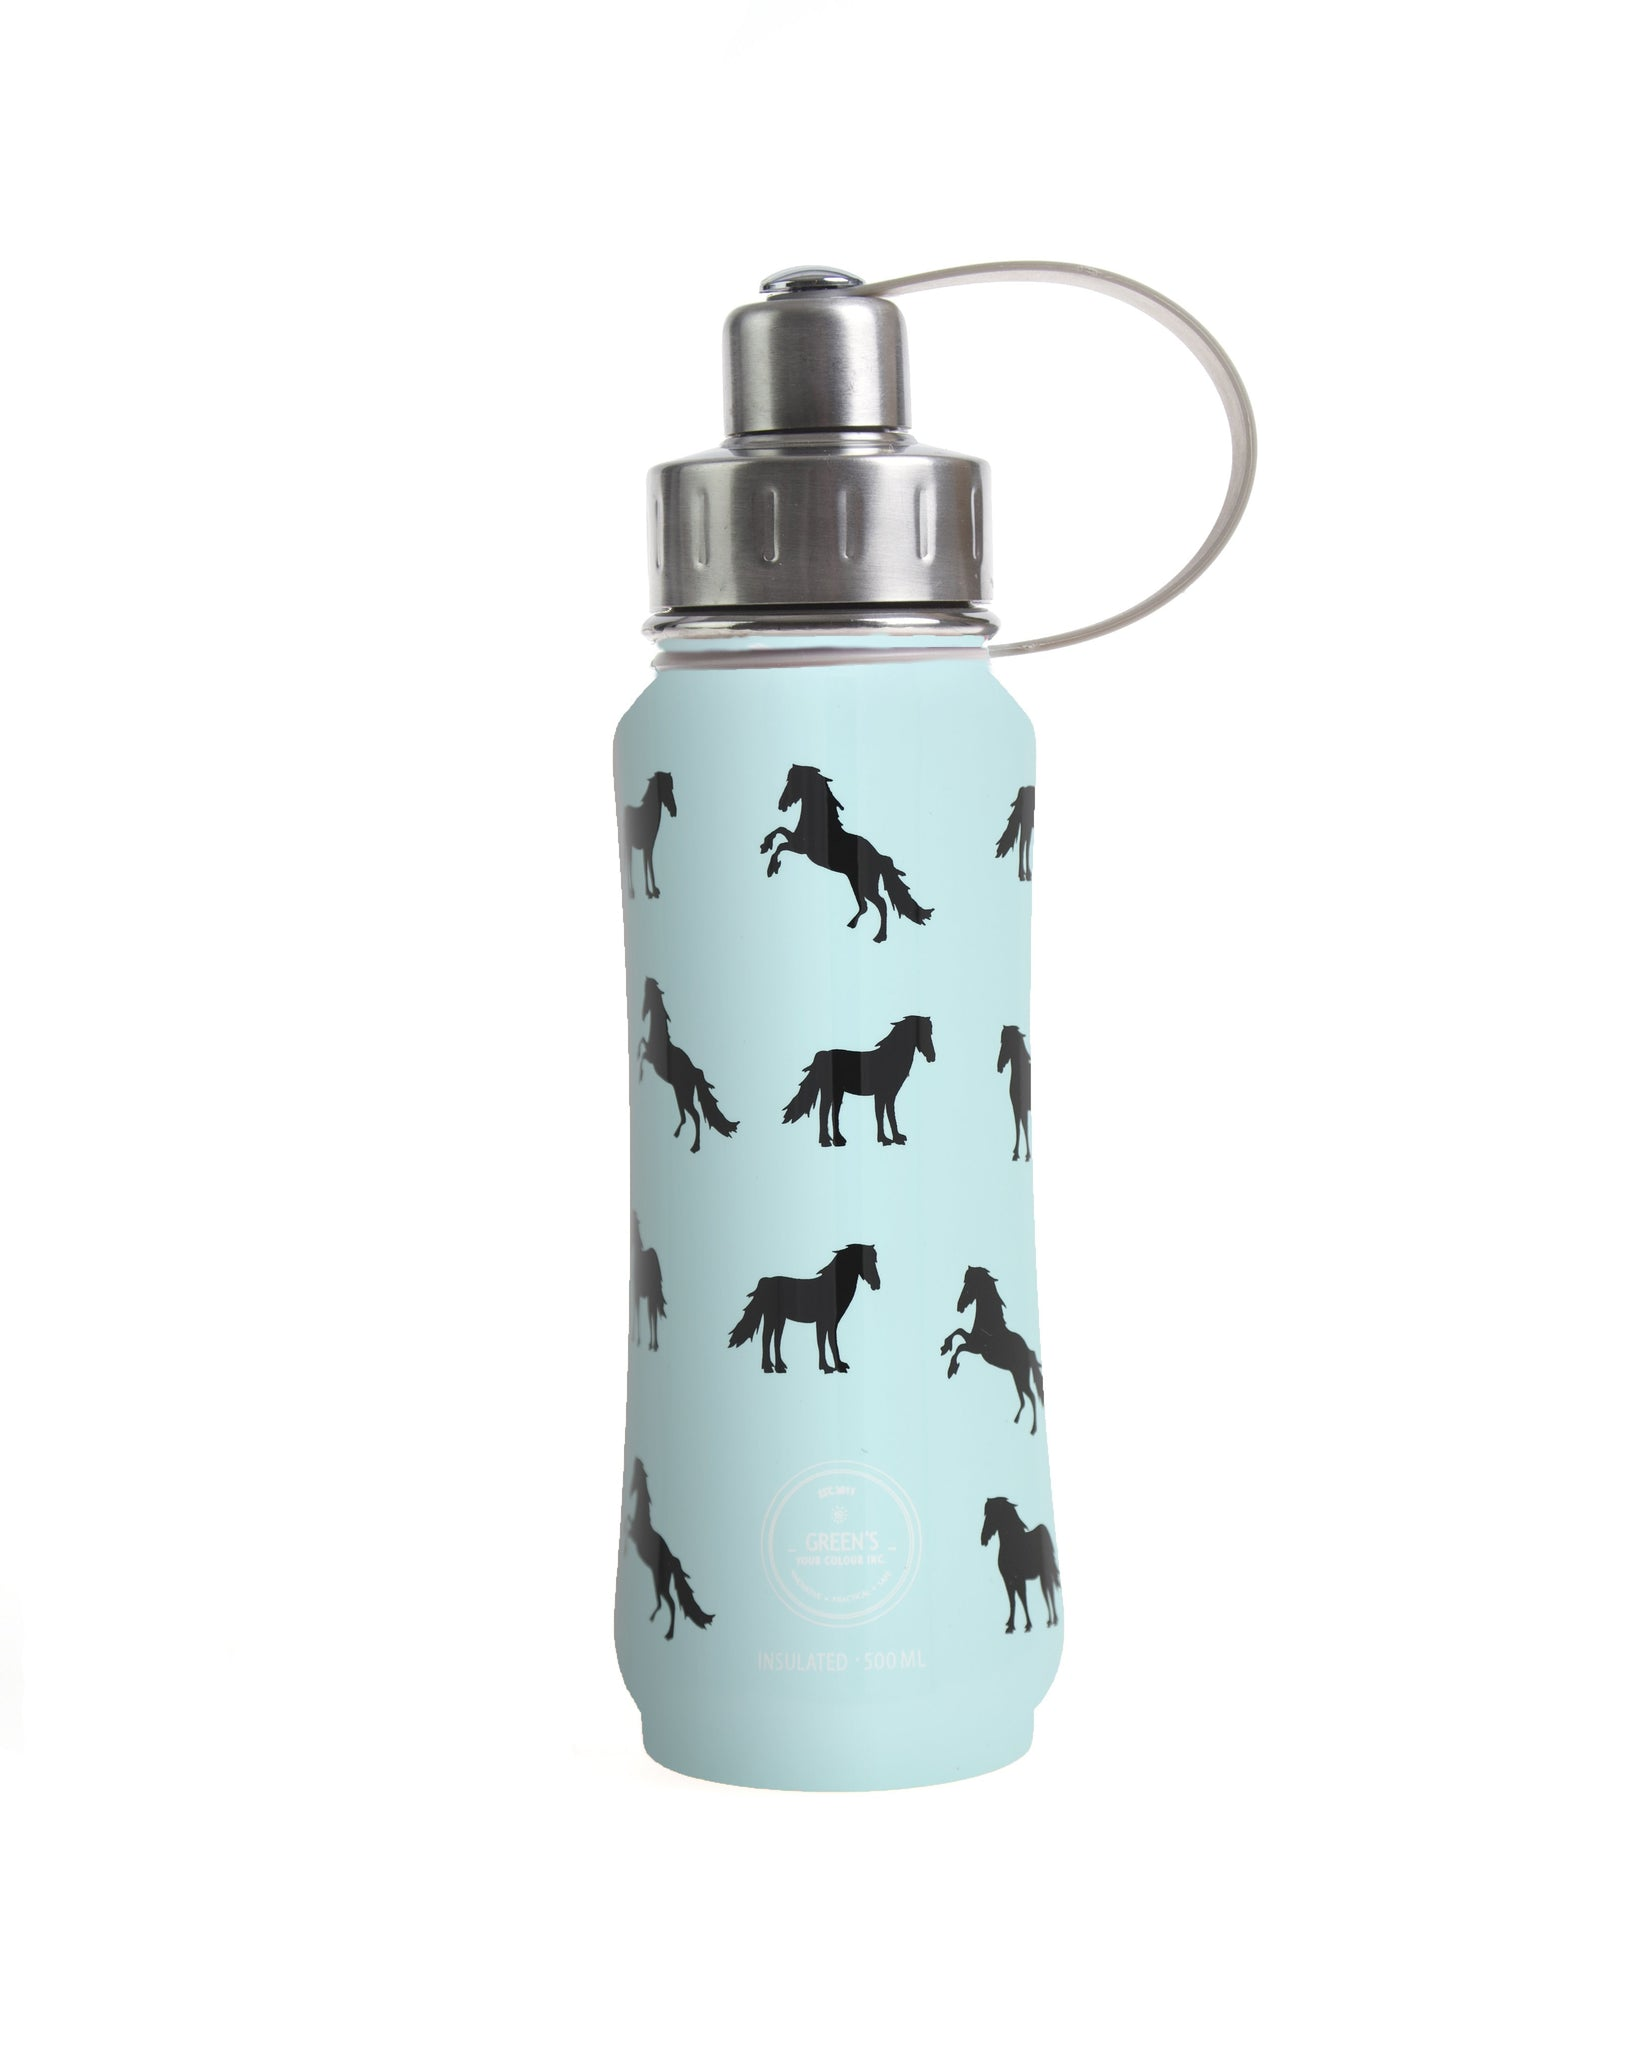 500 ml Teal Ultimate Horsey insulated vacuum stainless steel leak-proof water bottle carrying handle silver lid